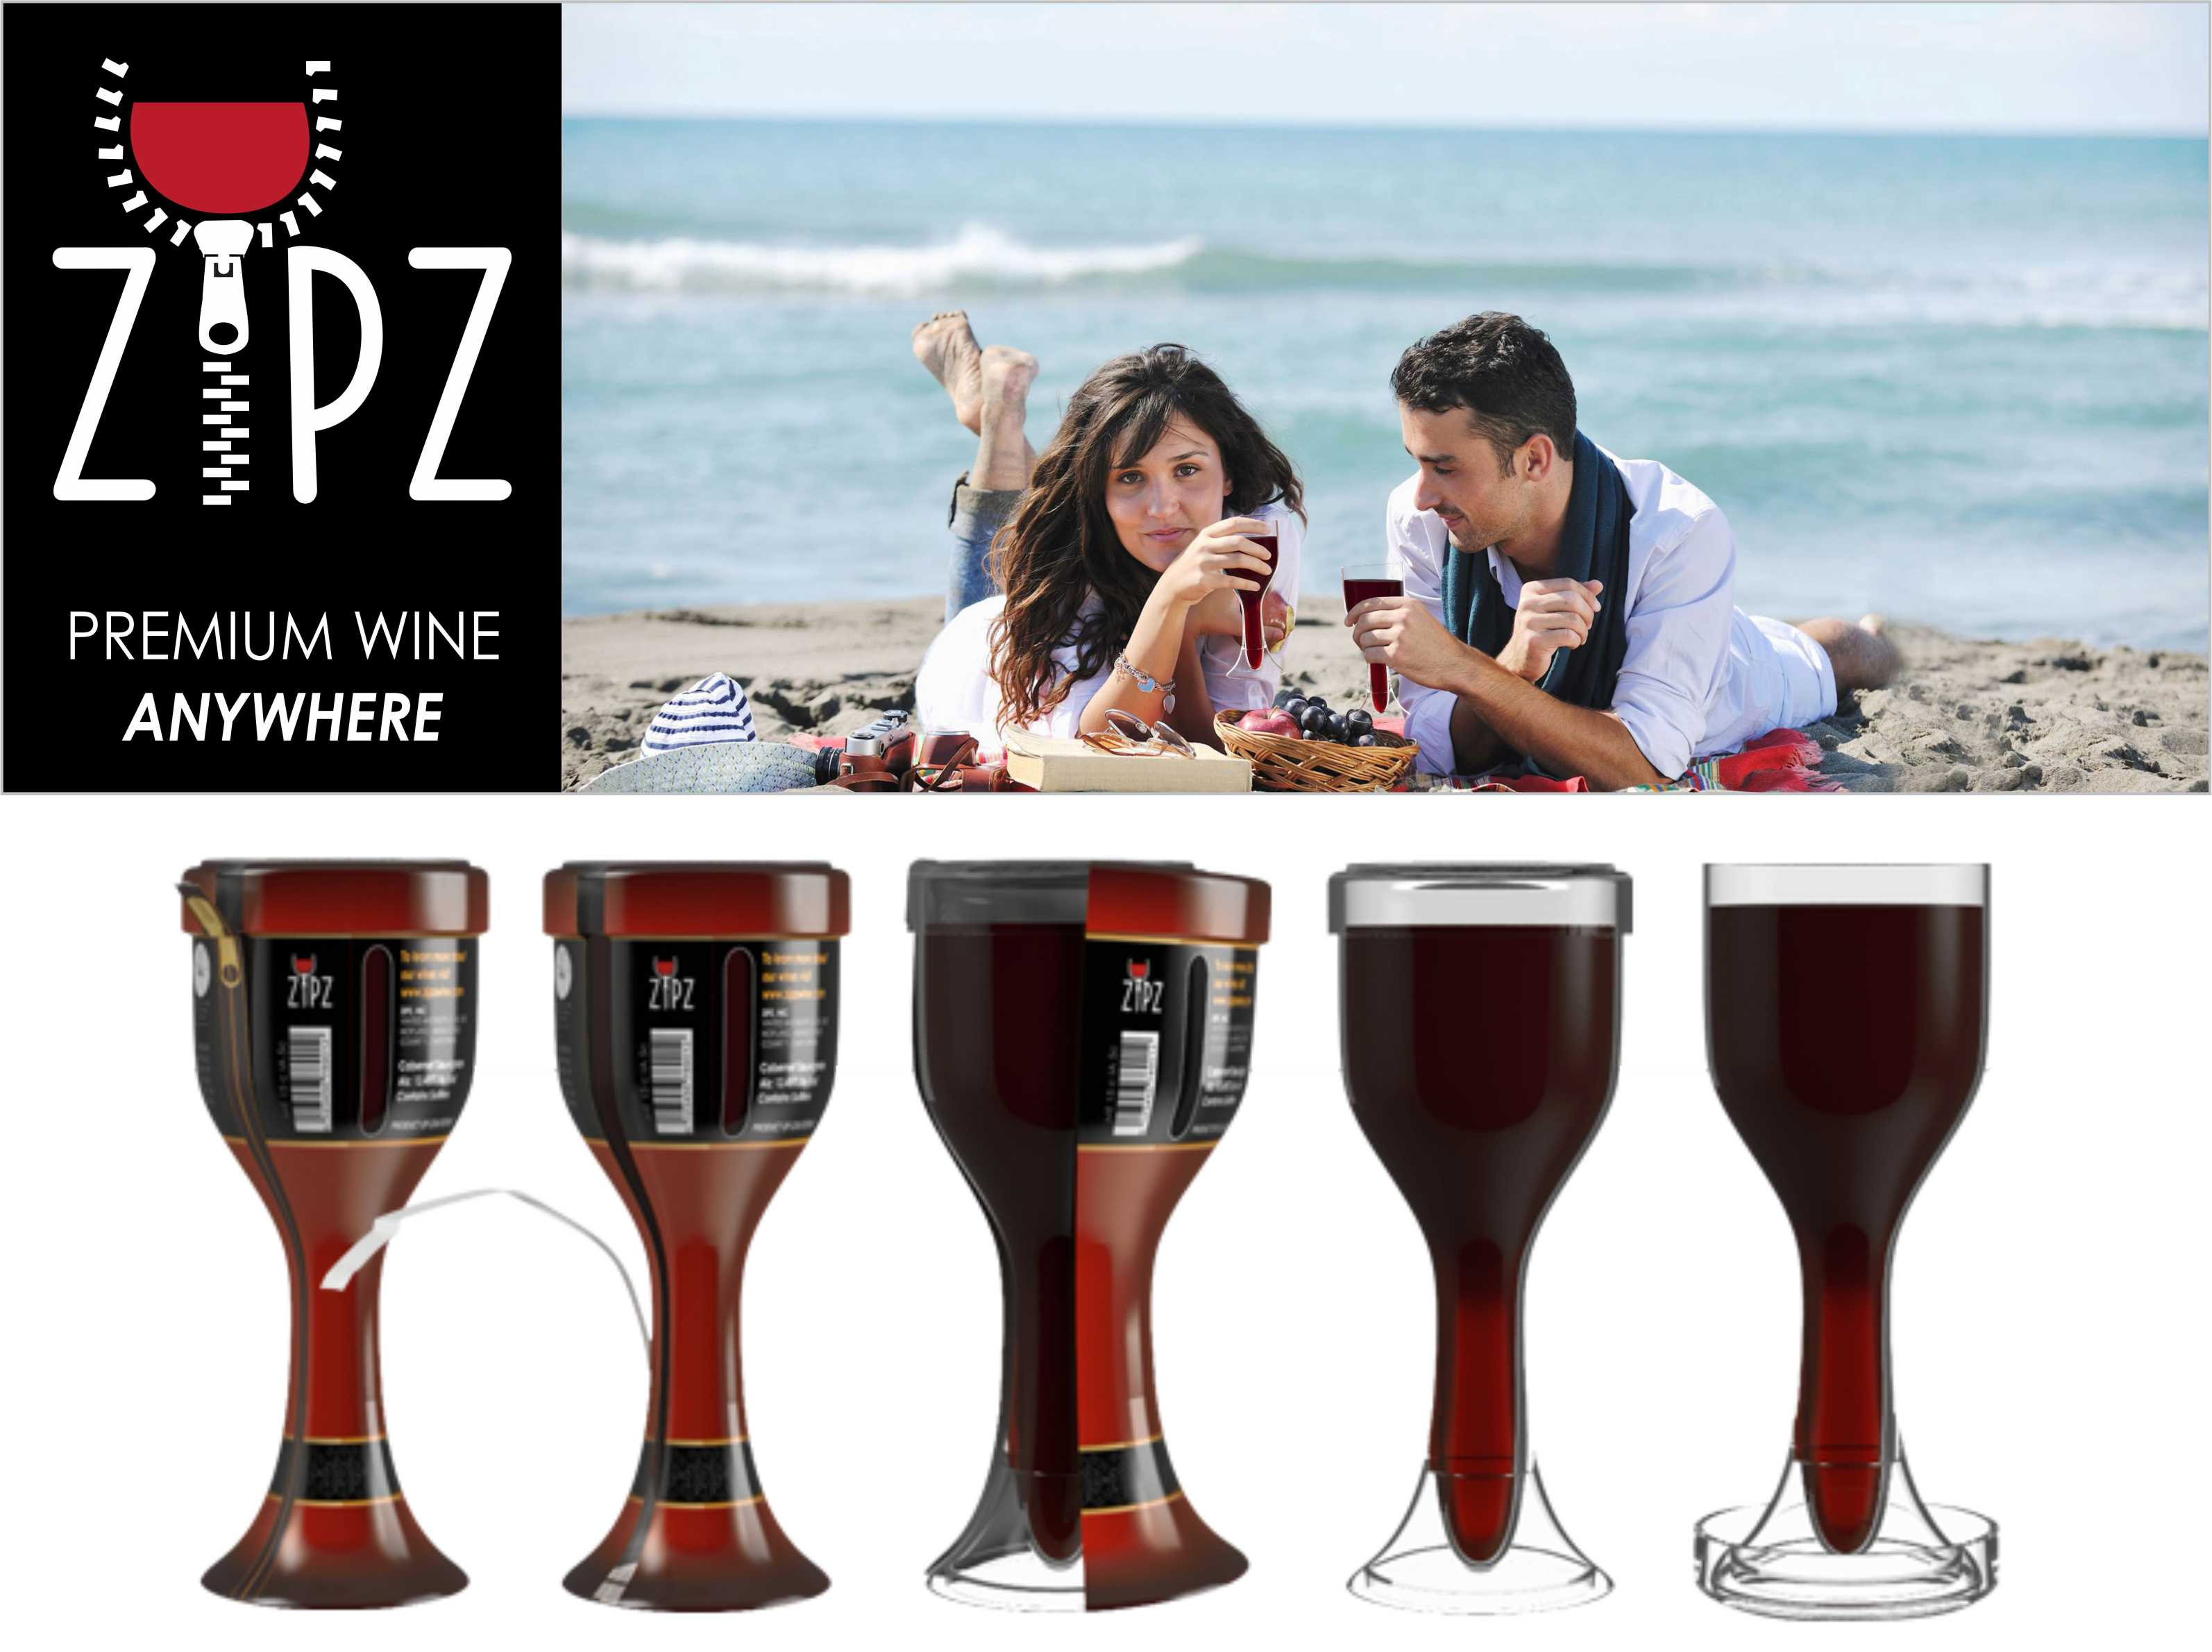 zipz-wine_product-industrial-design-firm-company-2